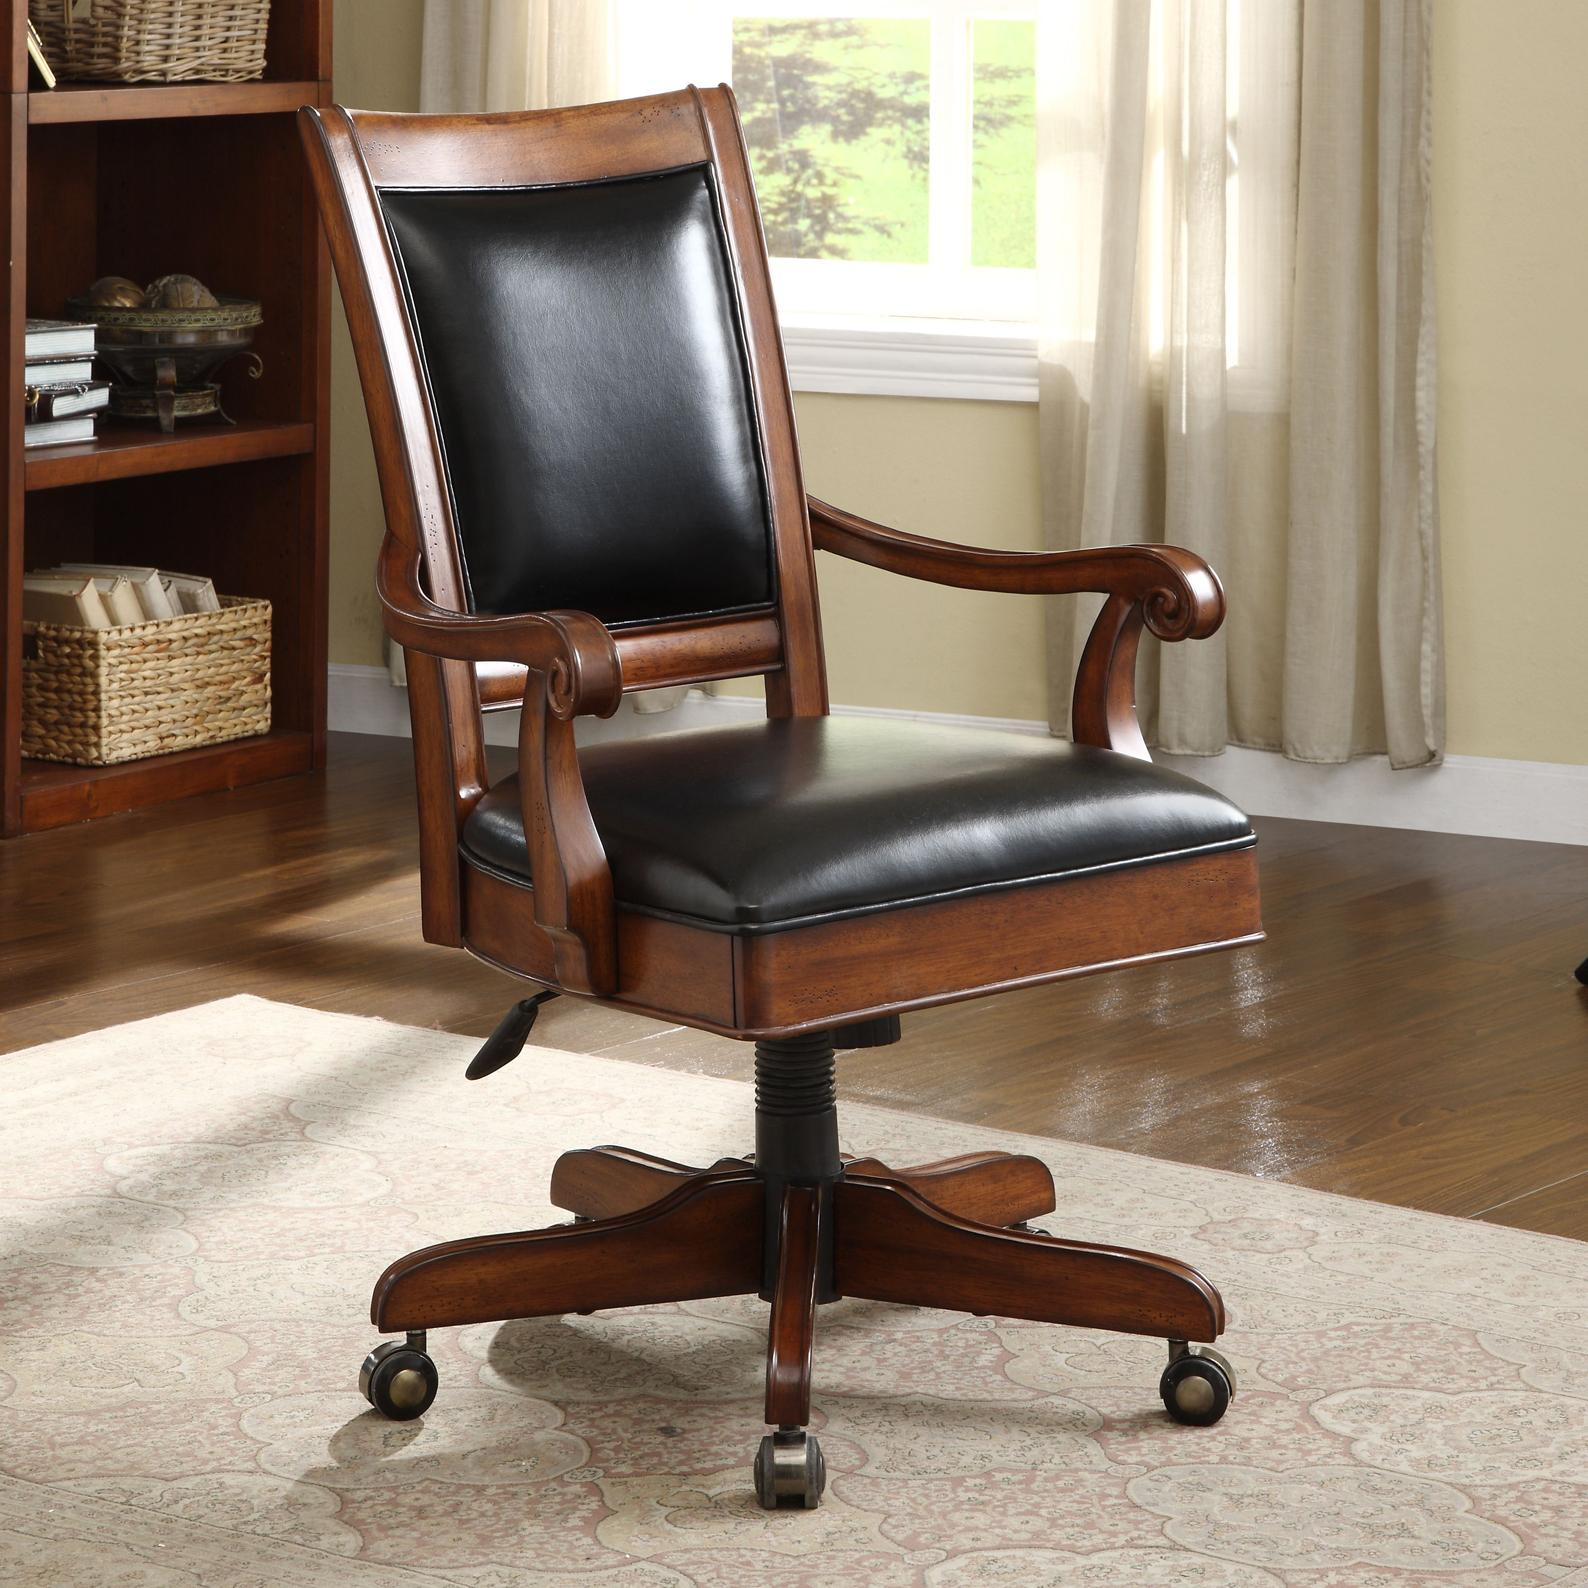 wooden office chair cover rentals hawaii caster equipped desk with leather covered